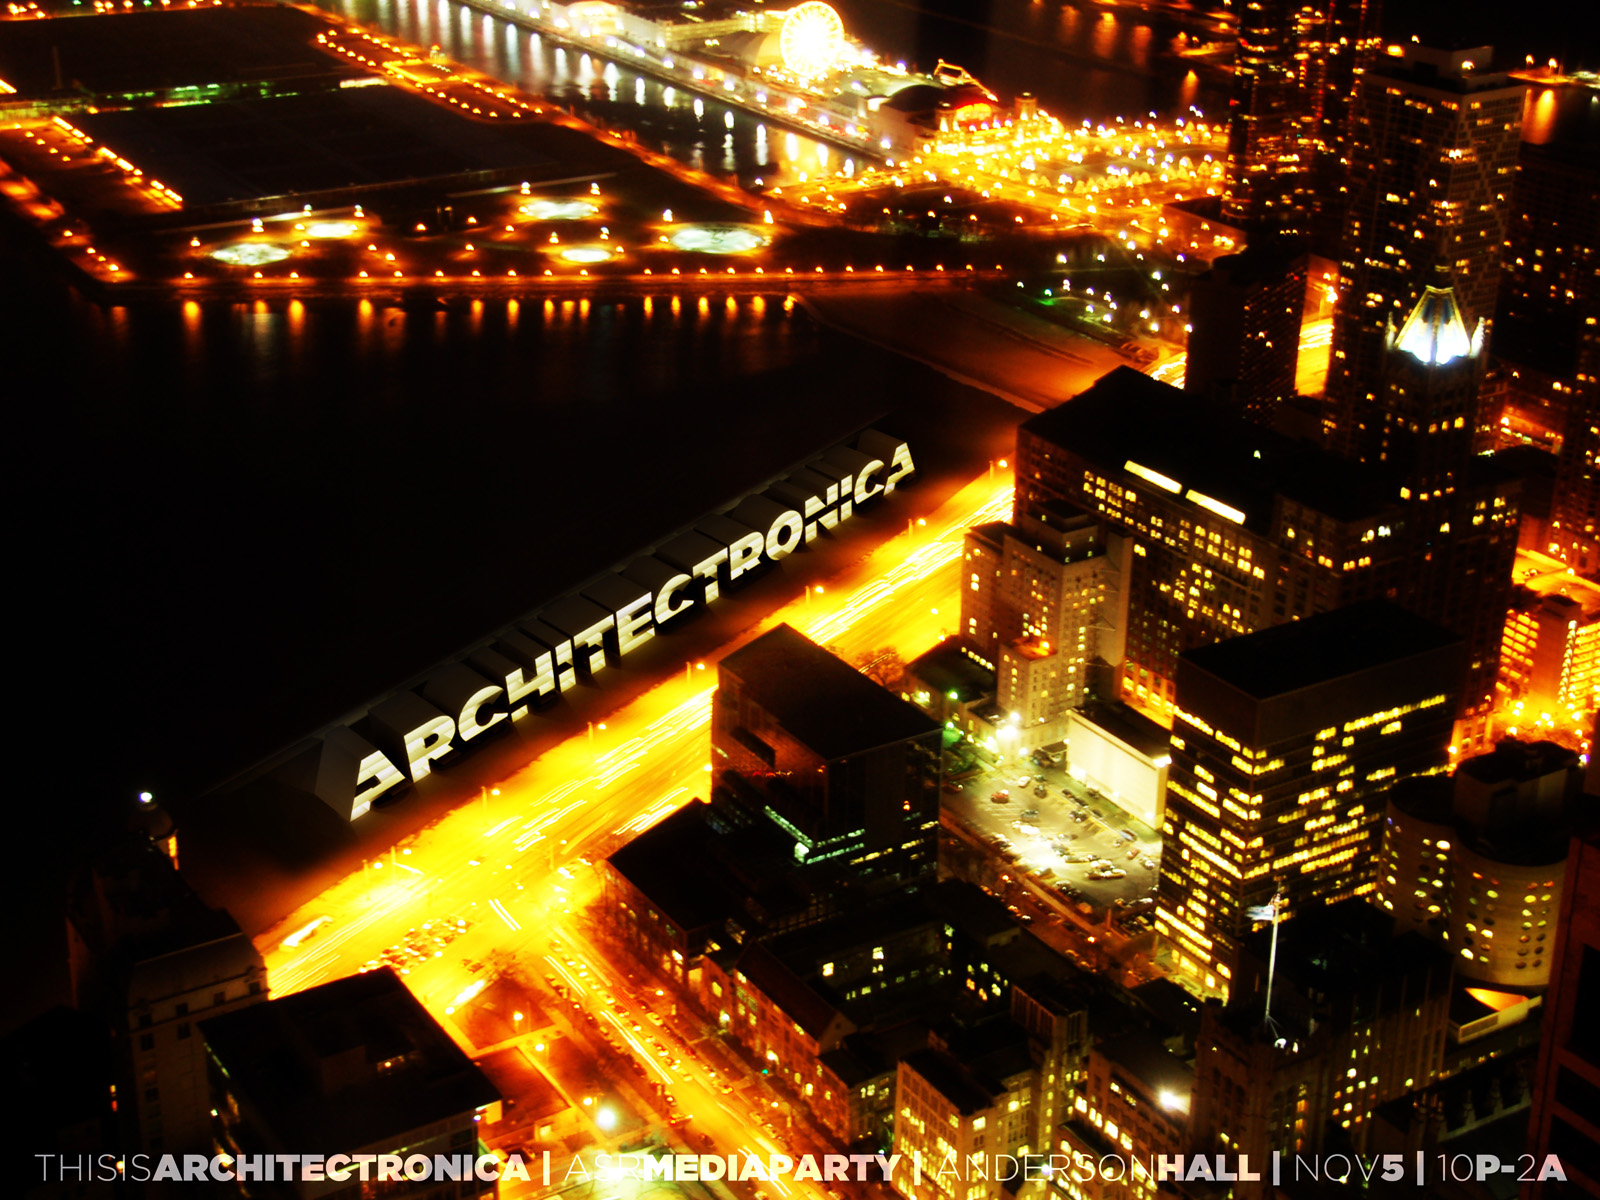 architectronica poster gold road aerial